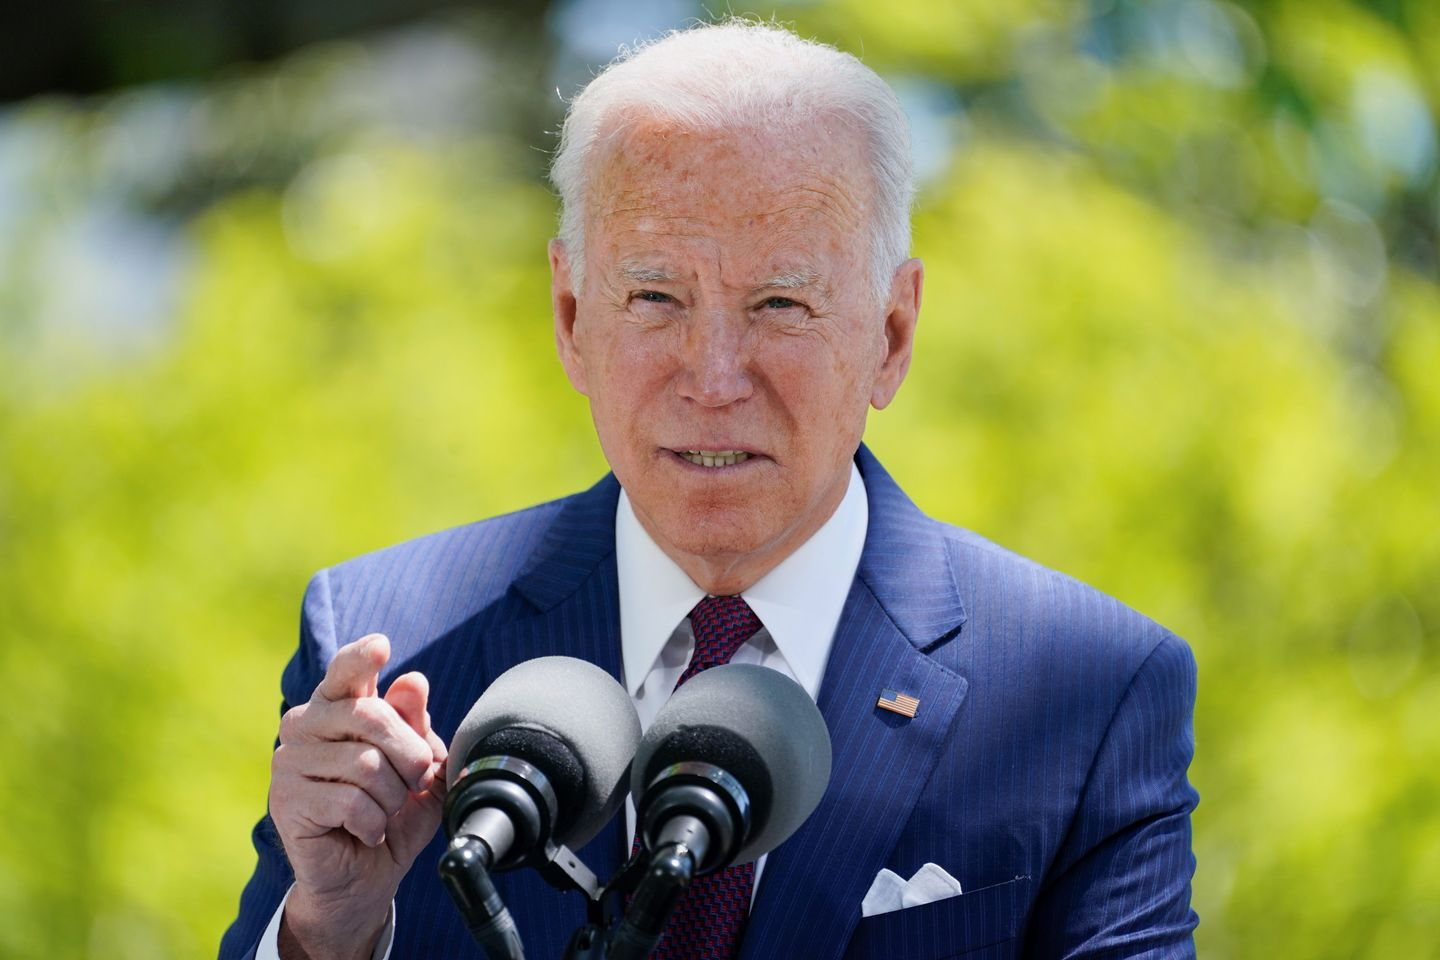 'Big government is back': Biden's unprecedented actions empower labor unions